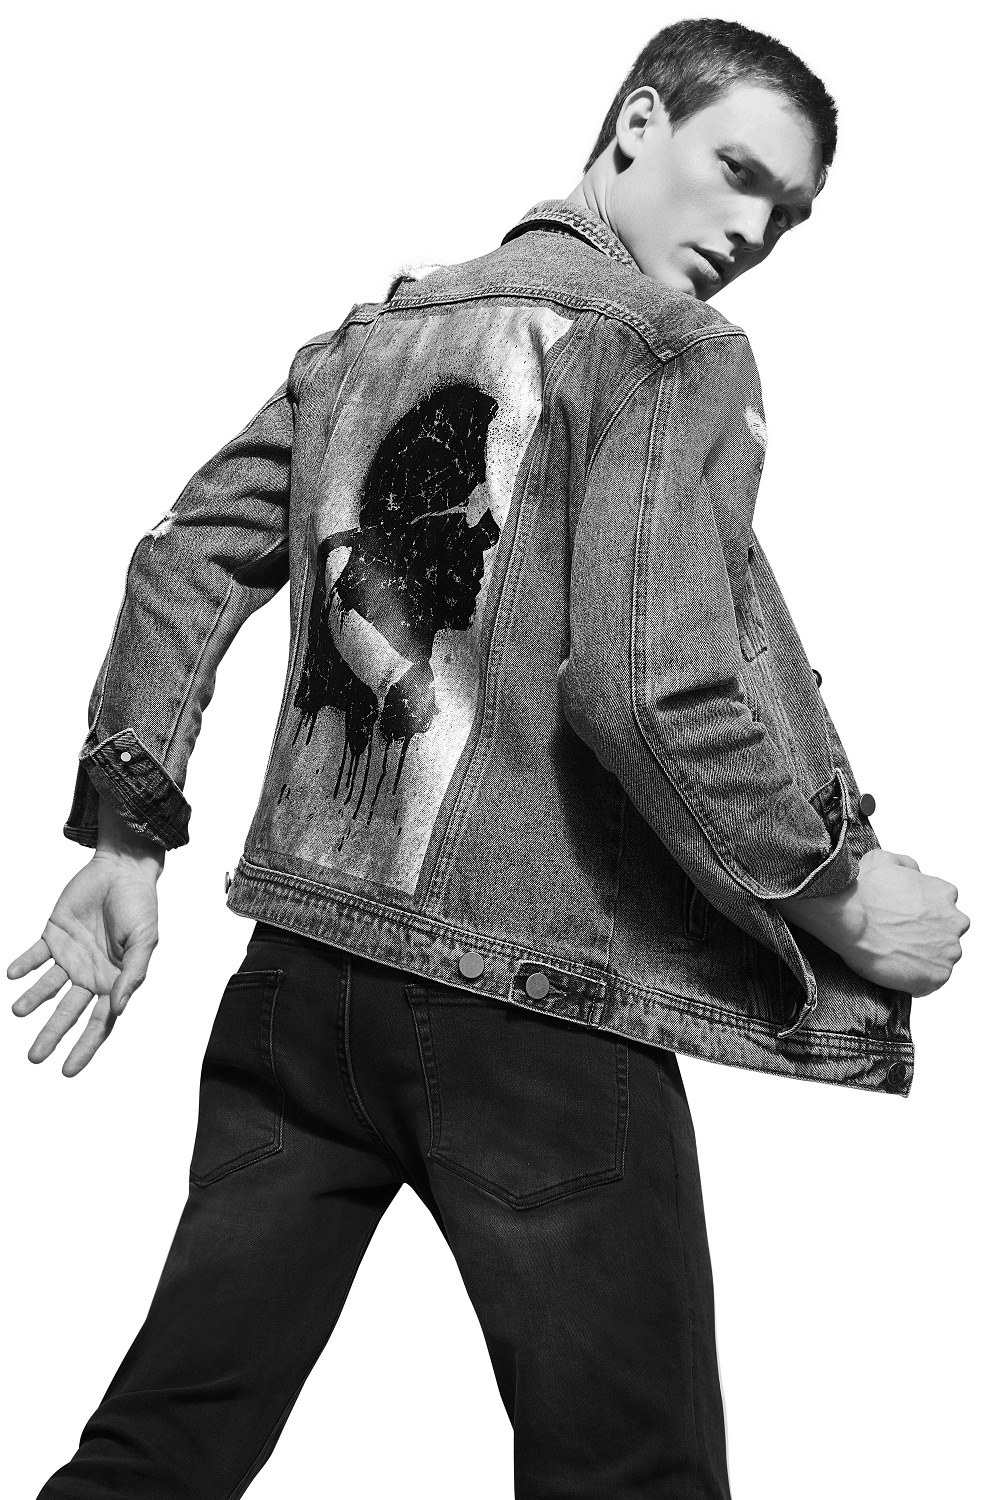 Karl Lagerfeld for Falabella - Hombre (1)